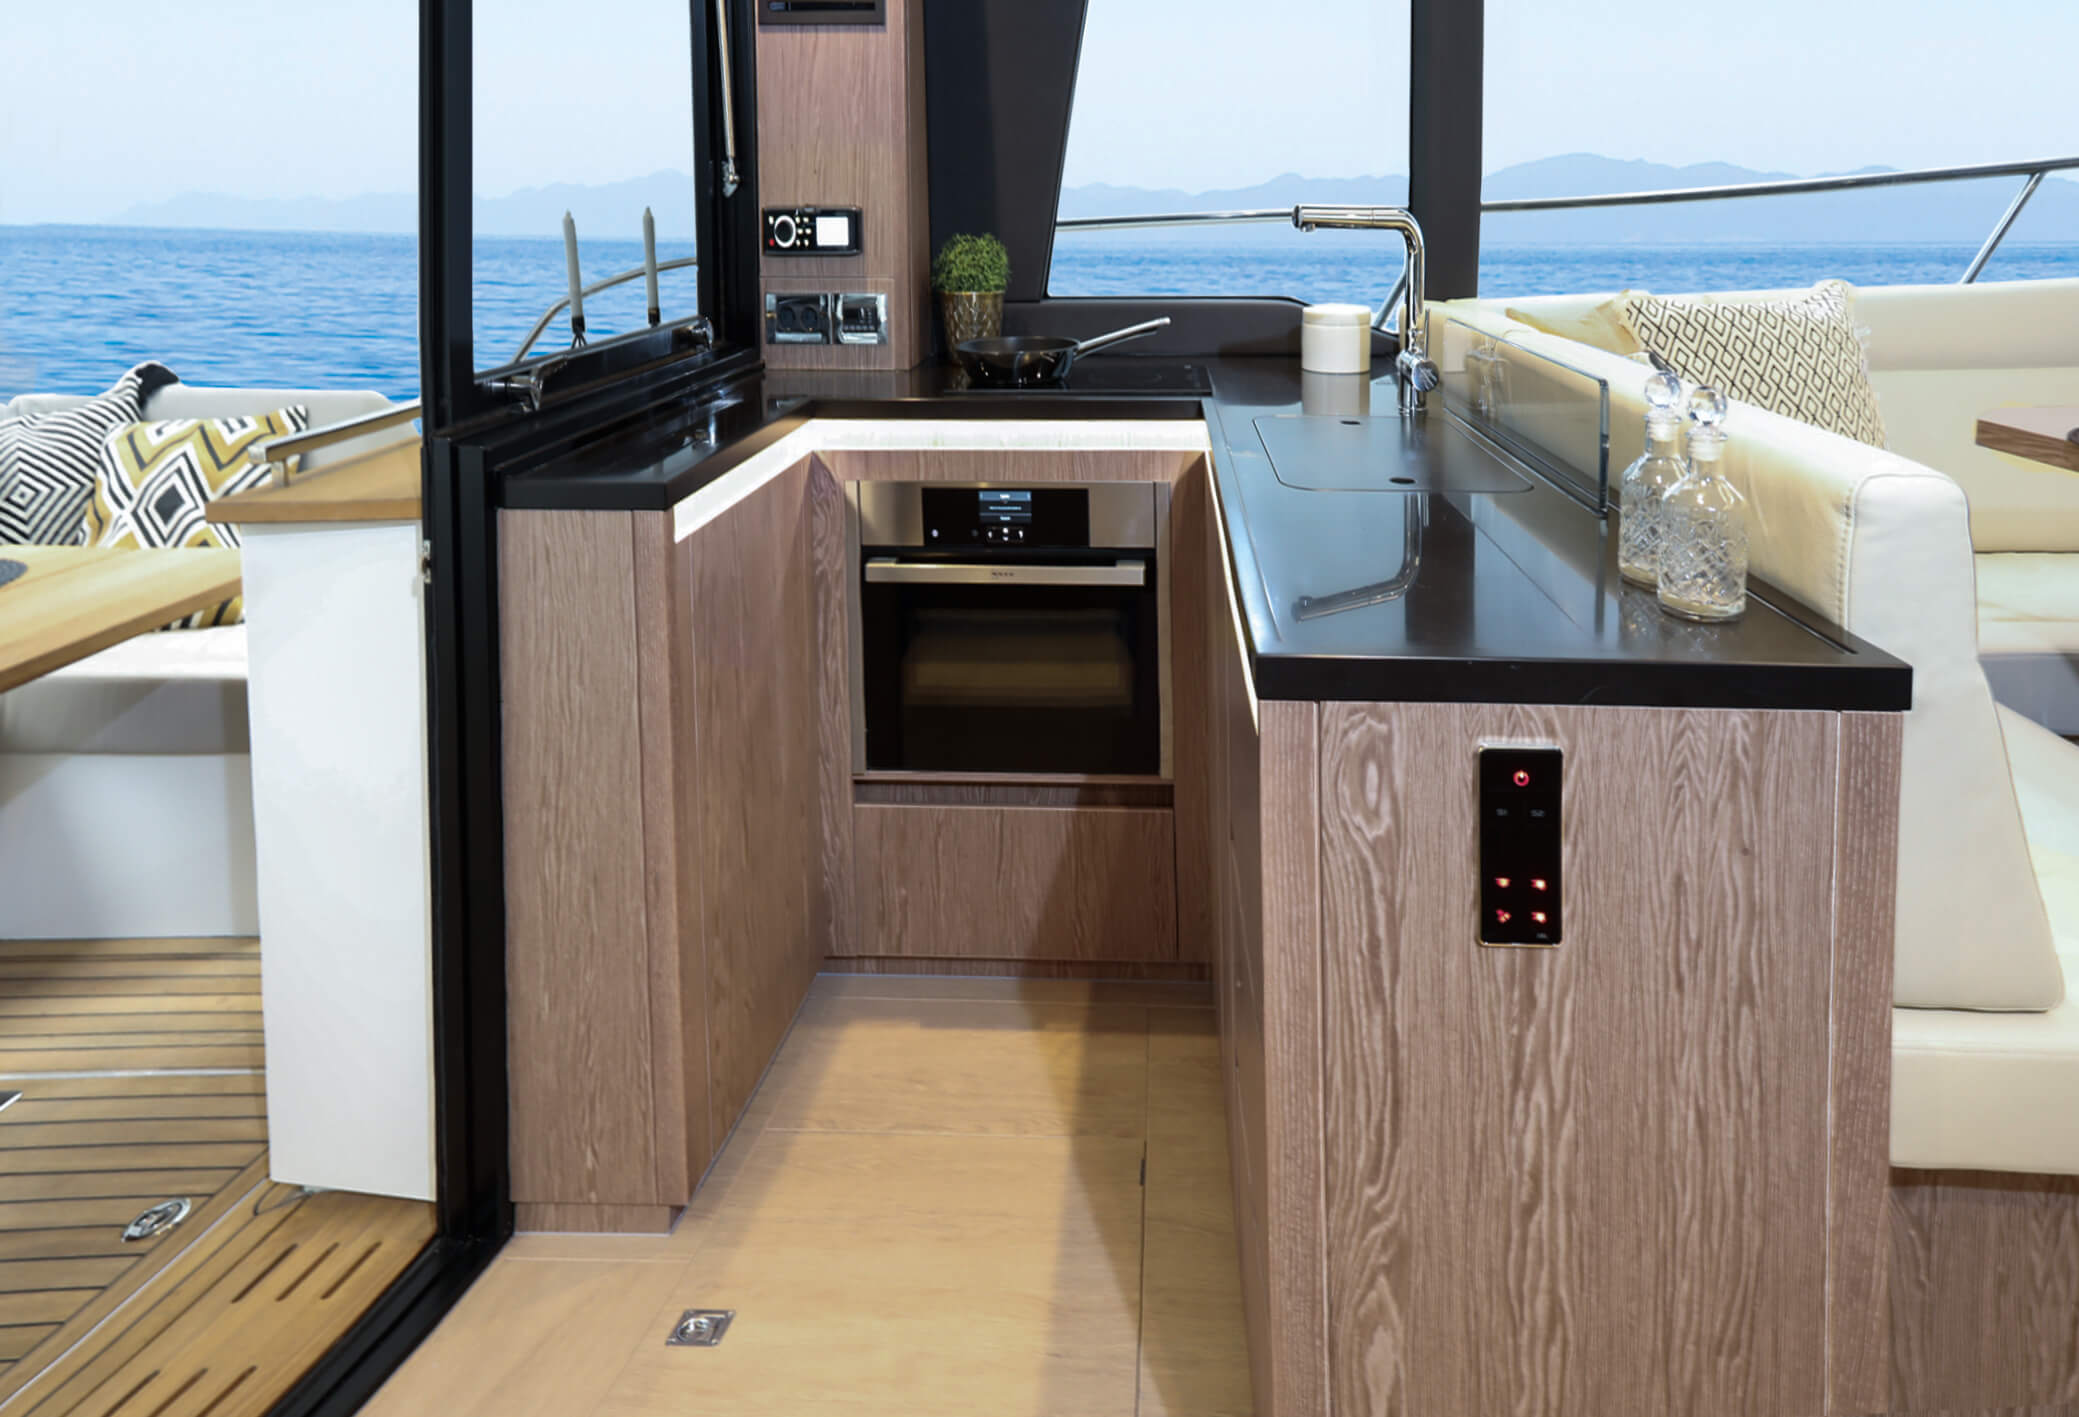 Sealine F430 Iç mekan görünümü | Galley with stowage, fridge with freezer compartment, Electric cooktop with 2-rings, Electric oven with microwave function and sink. | Sealine